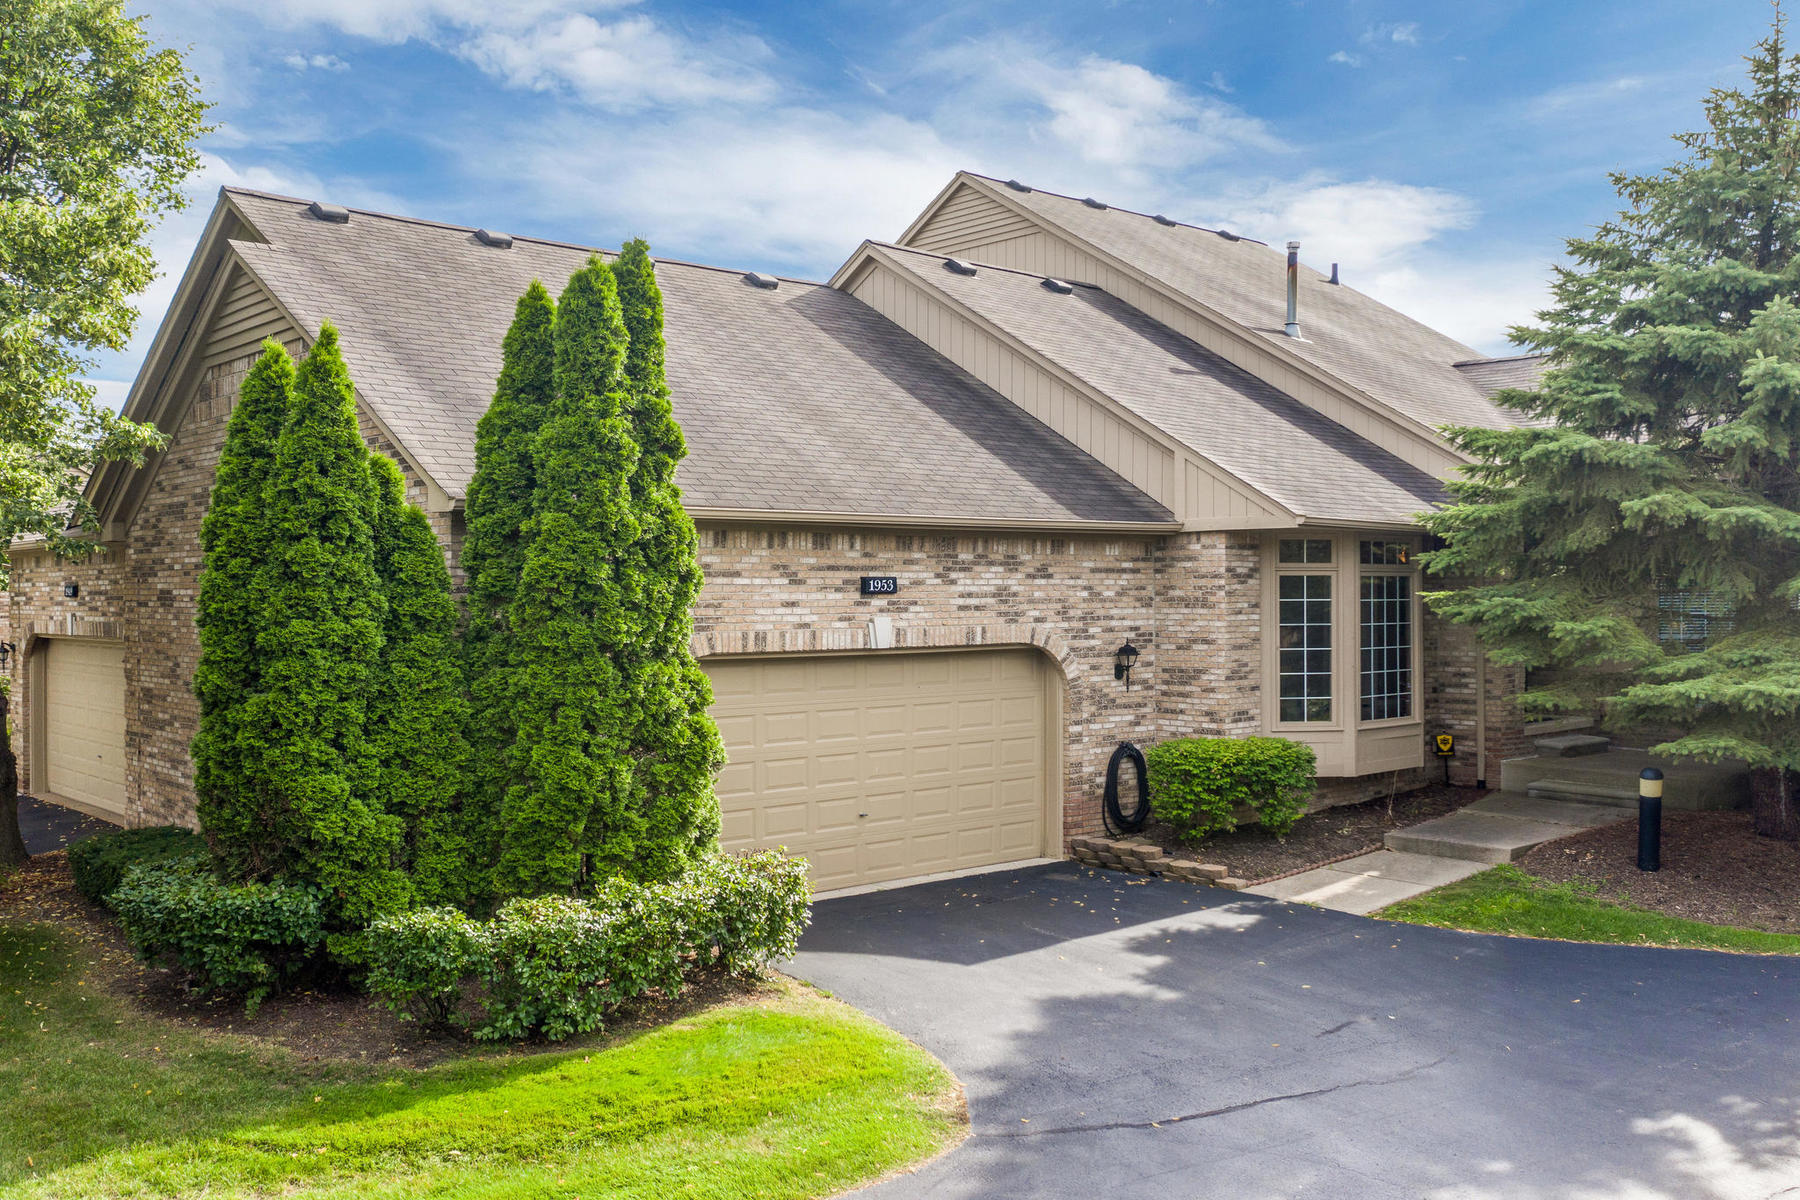 Condominiums for Sale at Shelby Township 1953 Clearwood Court Shelby Township, Michigan 48316 United States